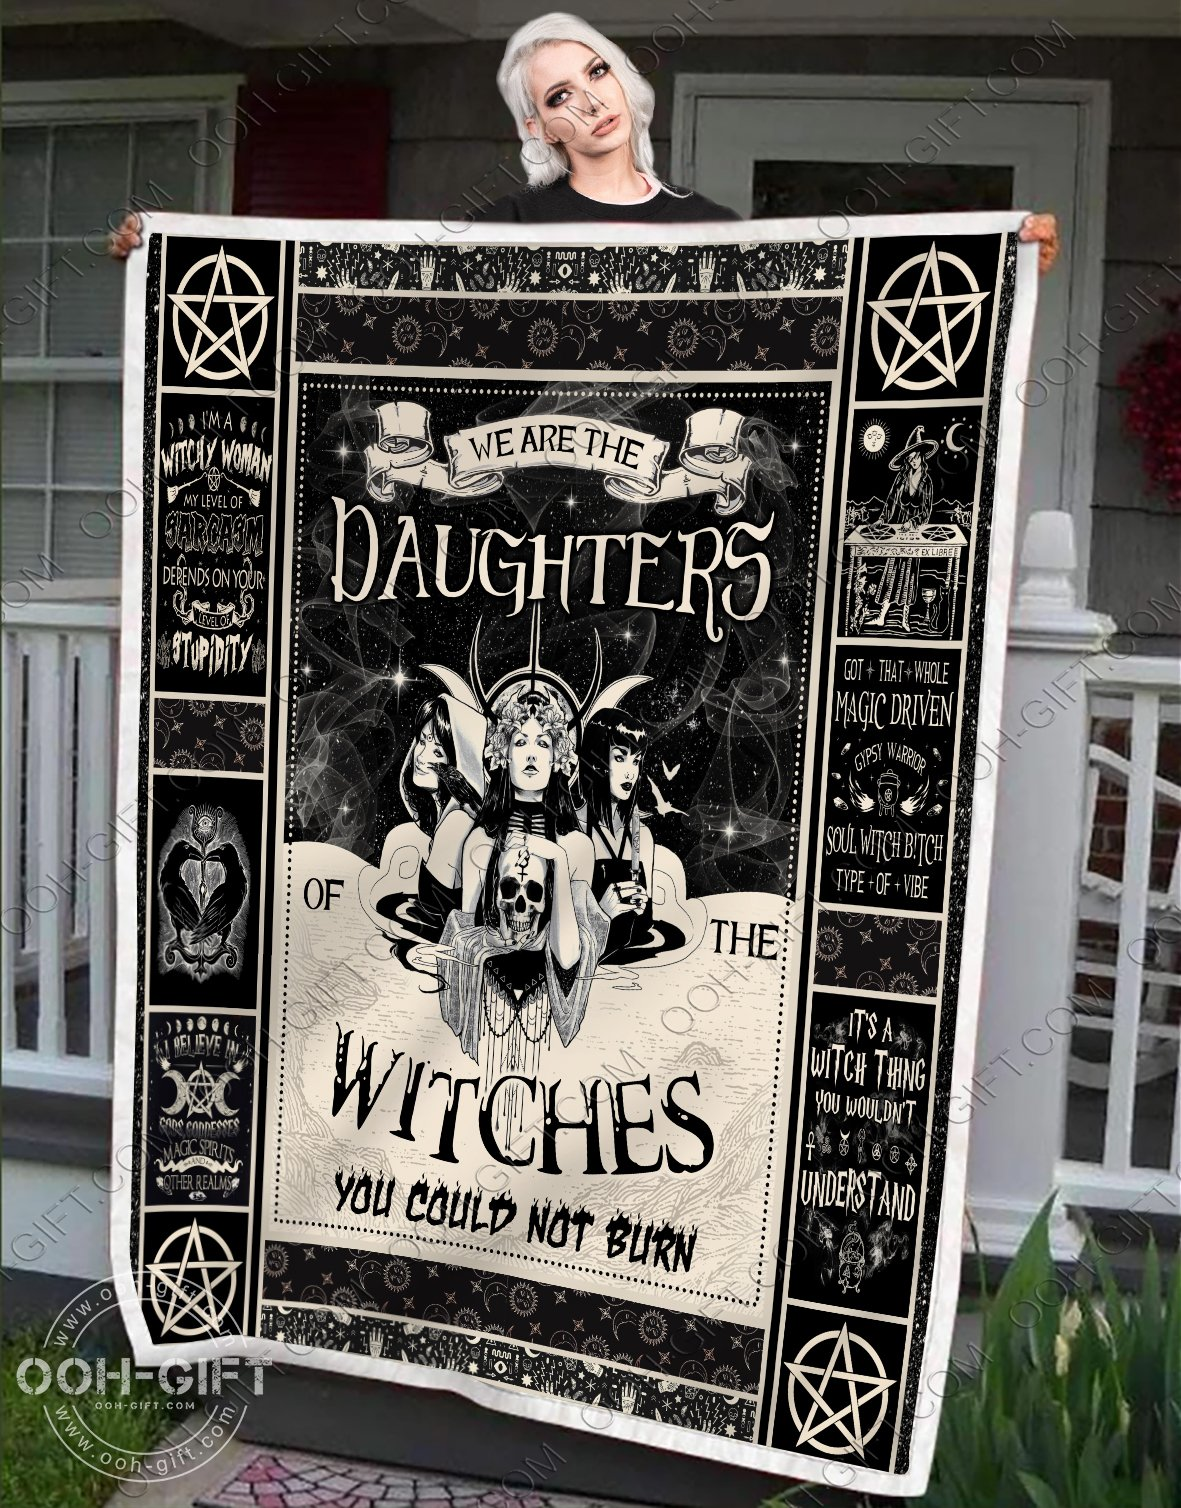 We are the daughters of the witches you could not burn blanket 2